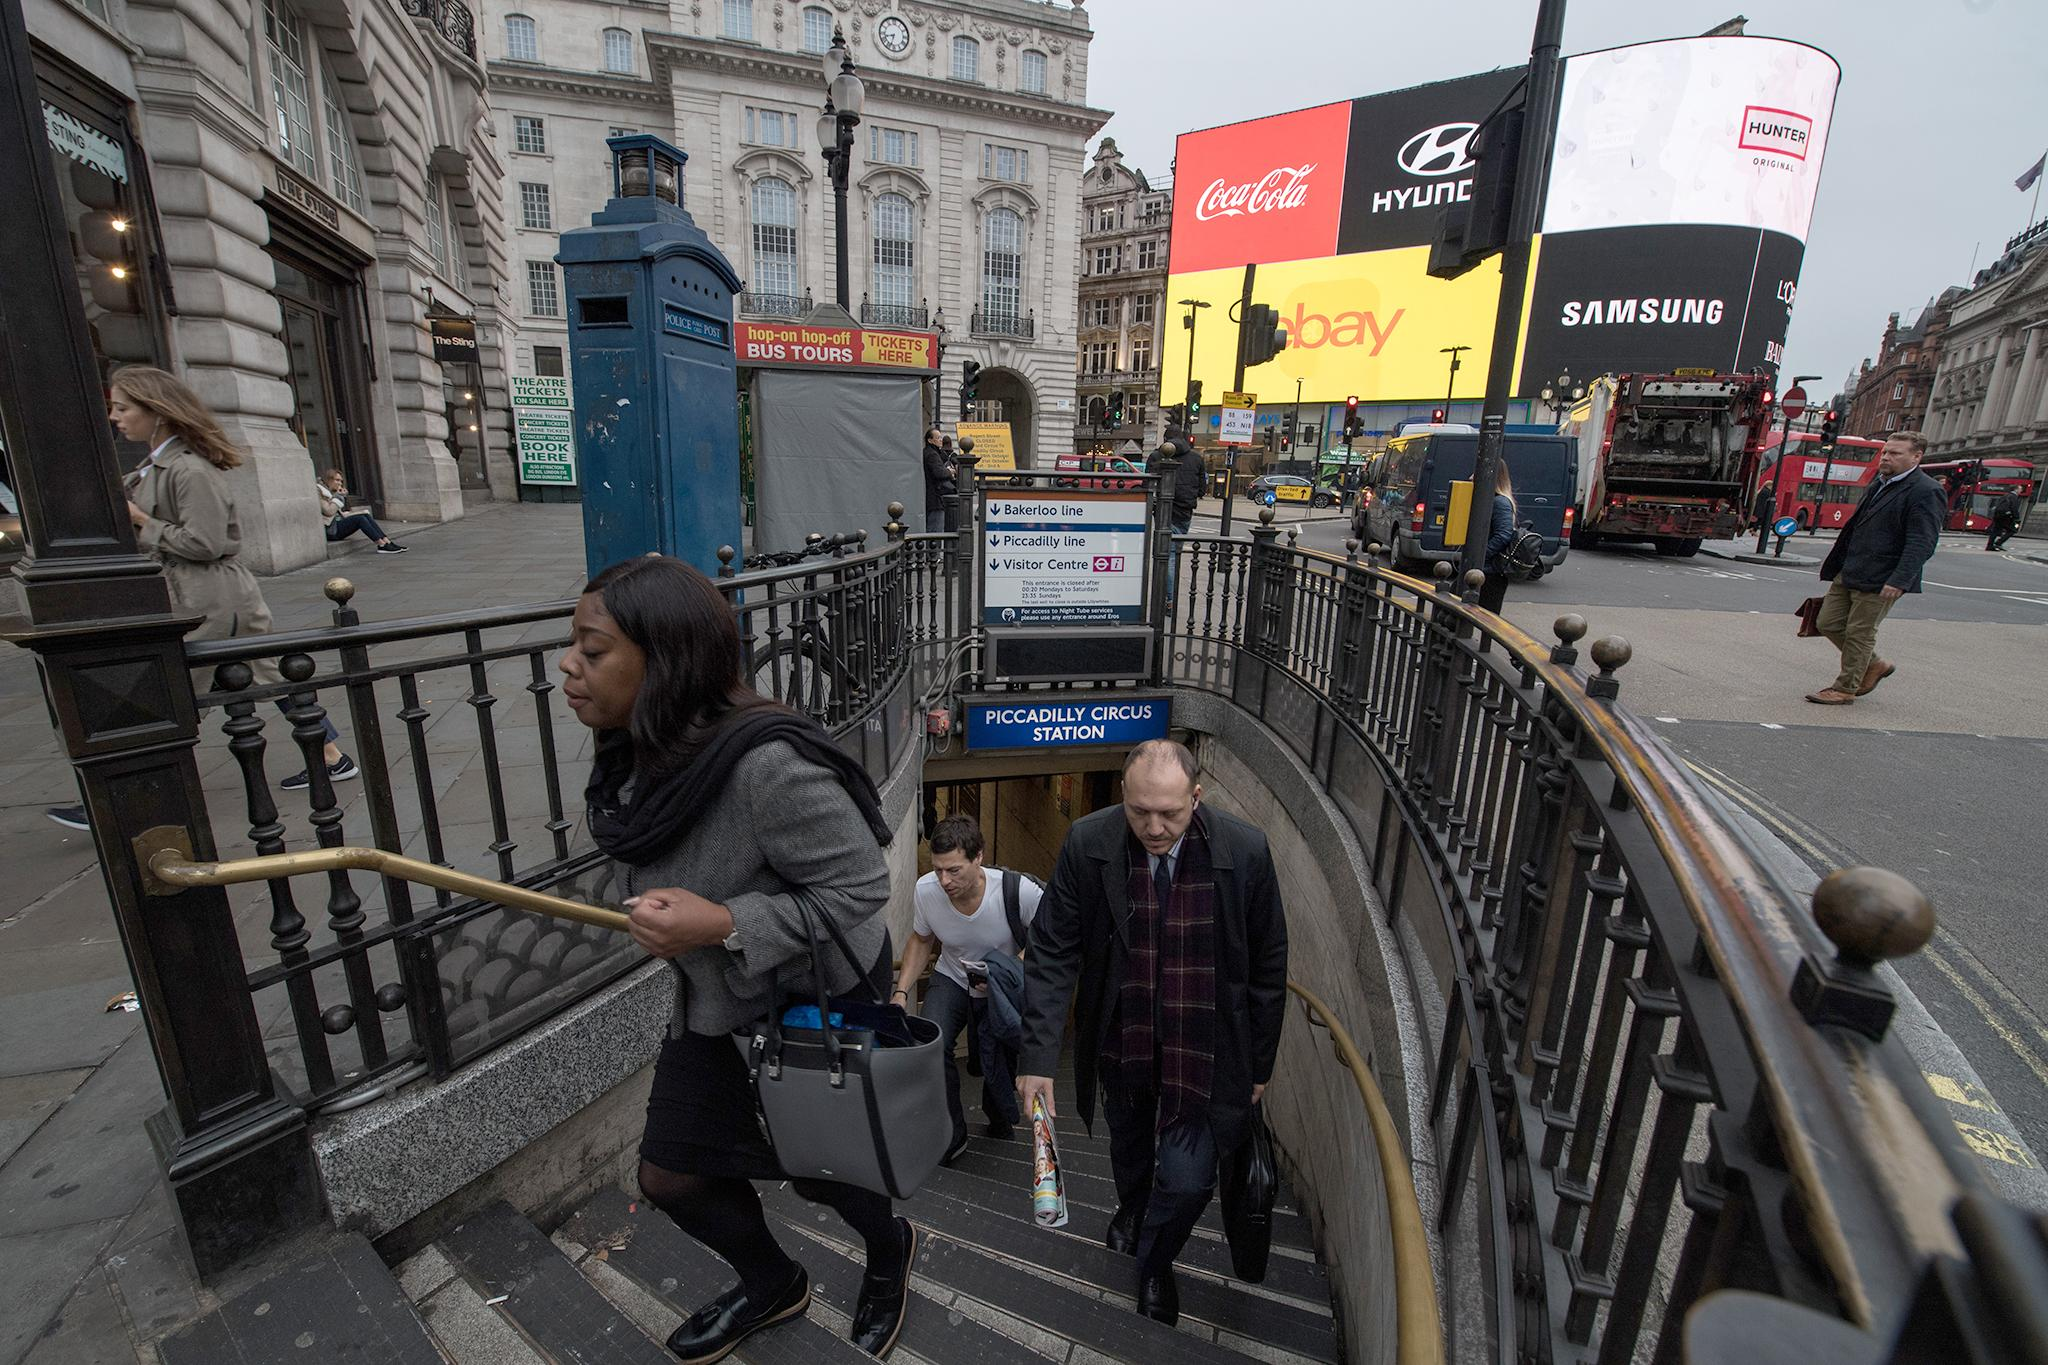 14. Piccadilly Circus